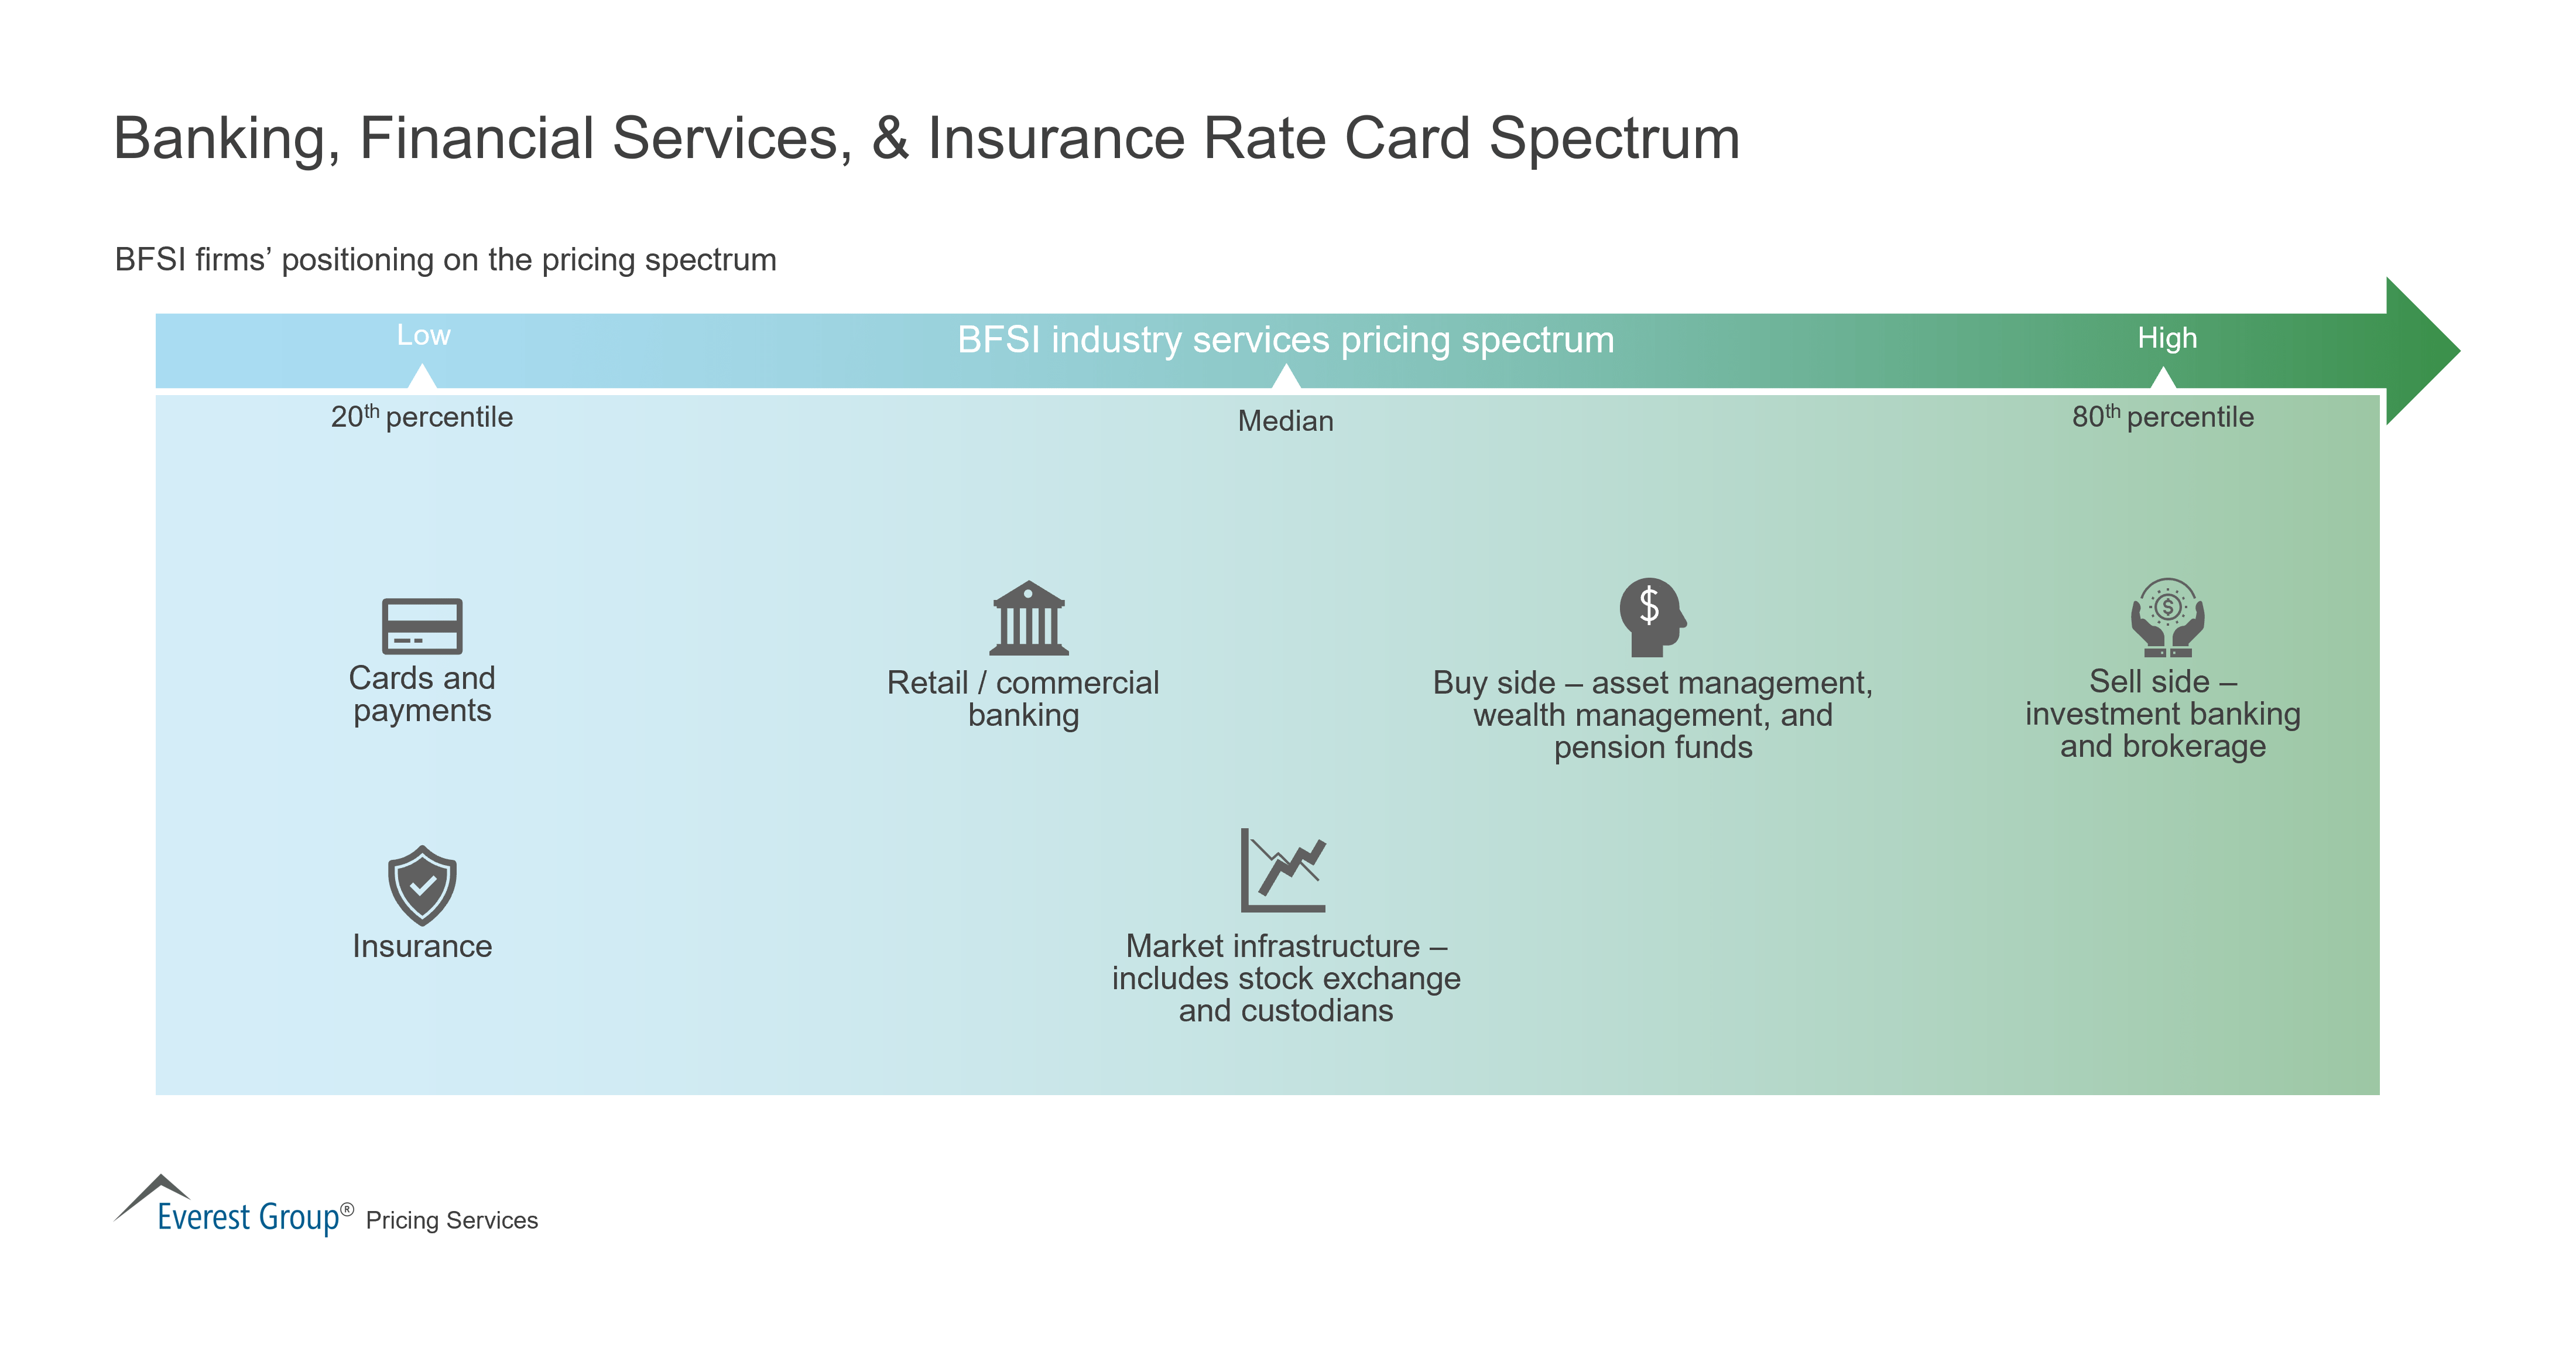 Banking, Financial Services, & Insurance Rate Card Spectrum